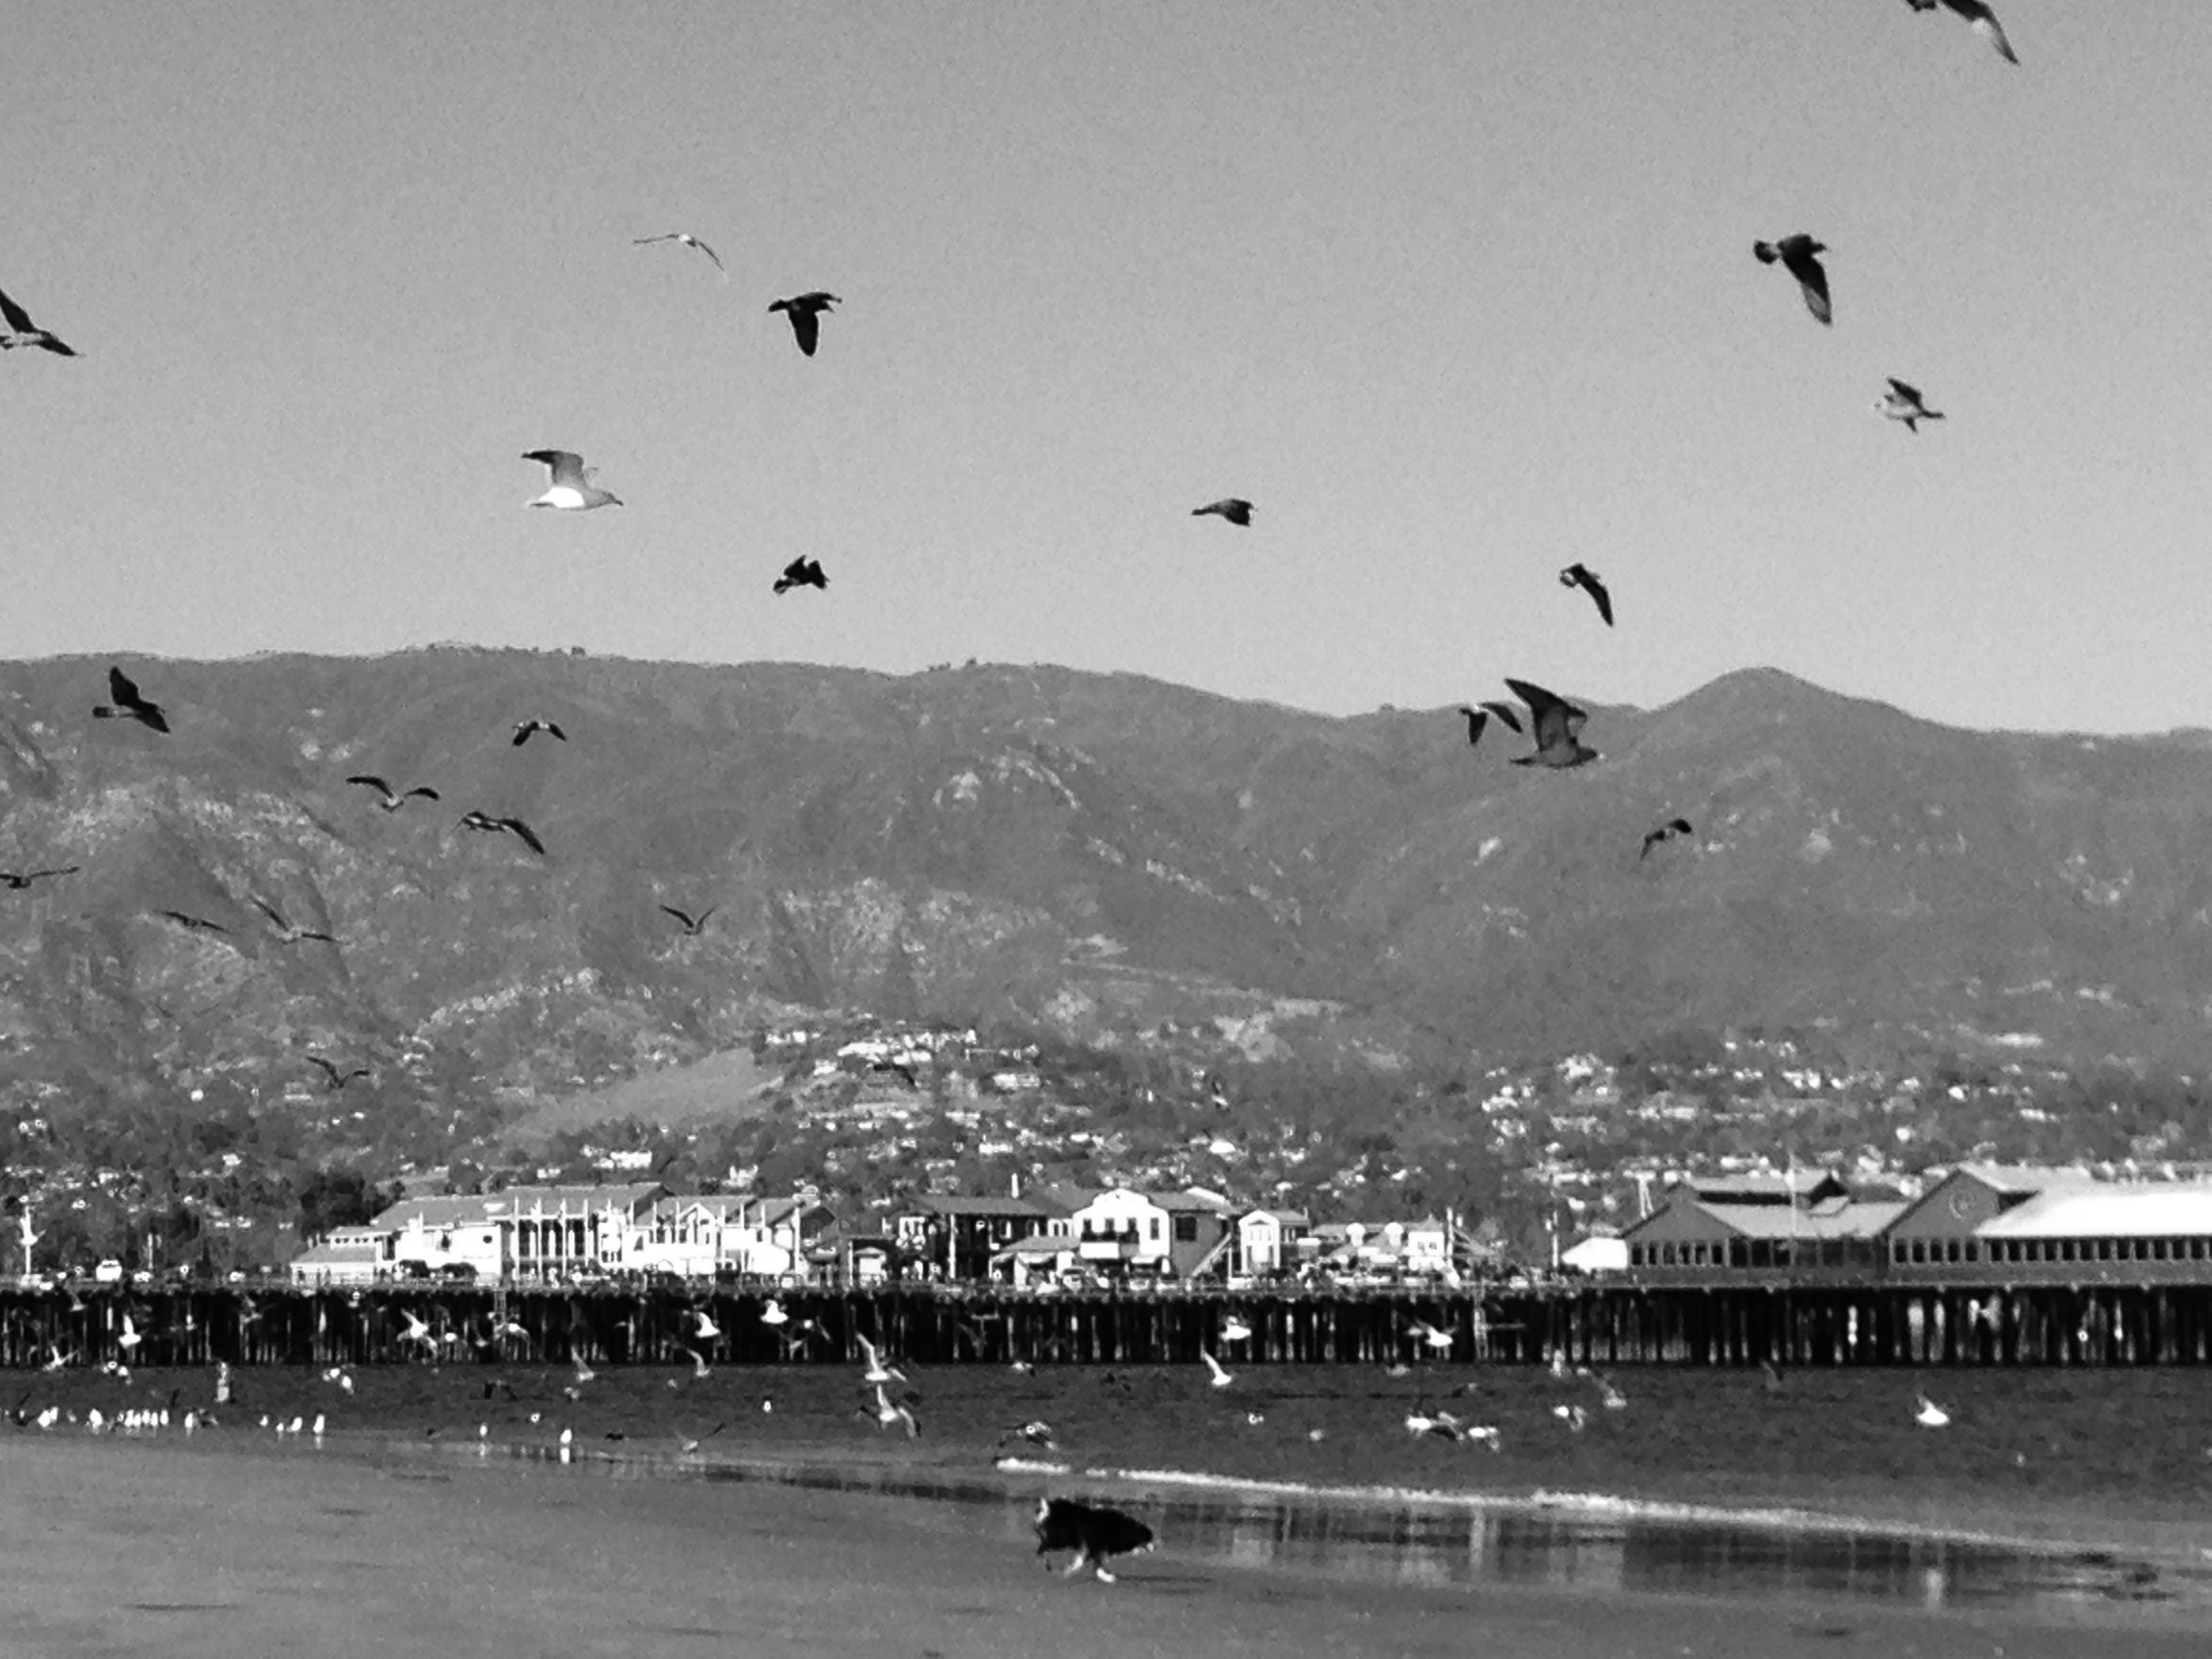 BW_Stearns Wharf with birds.jpg